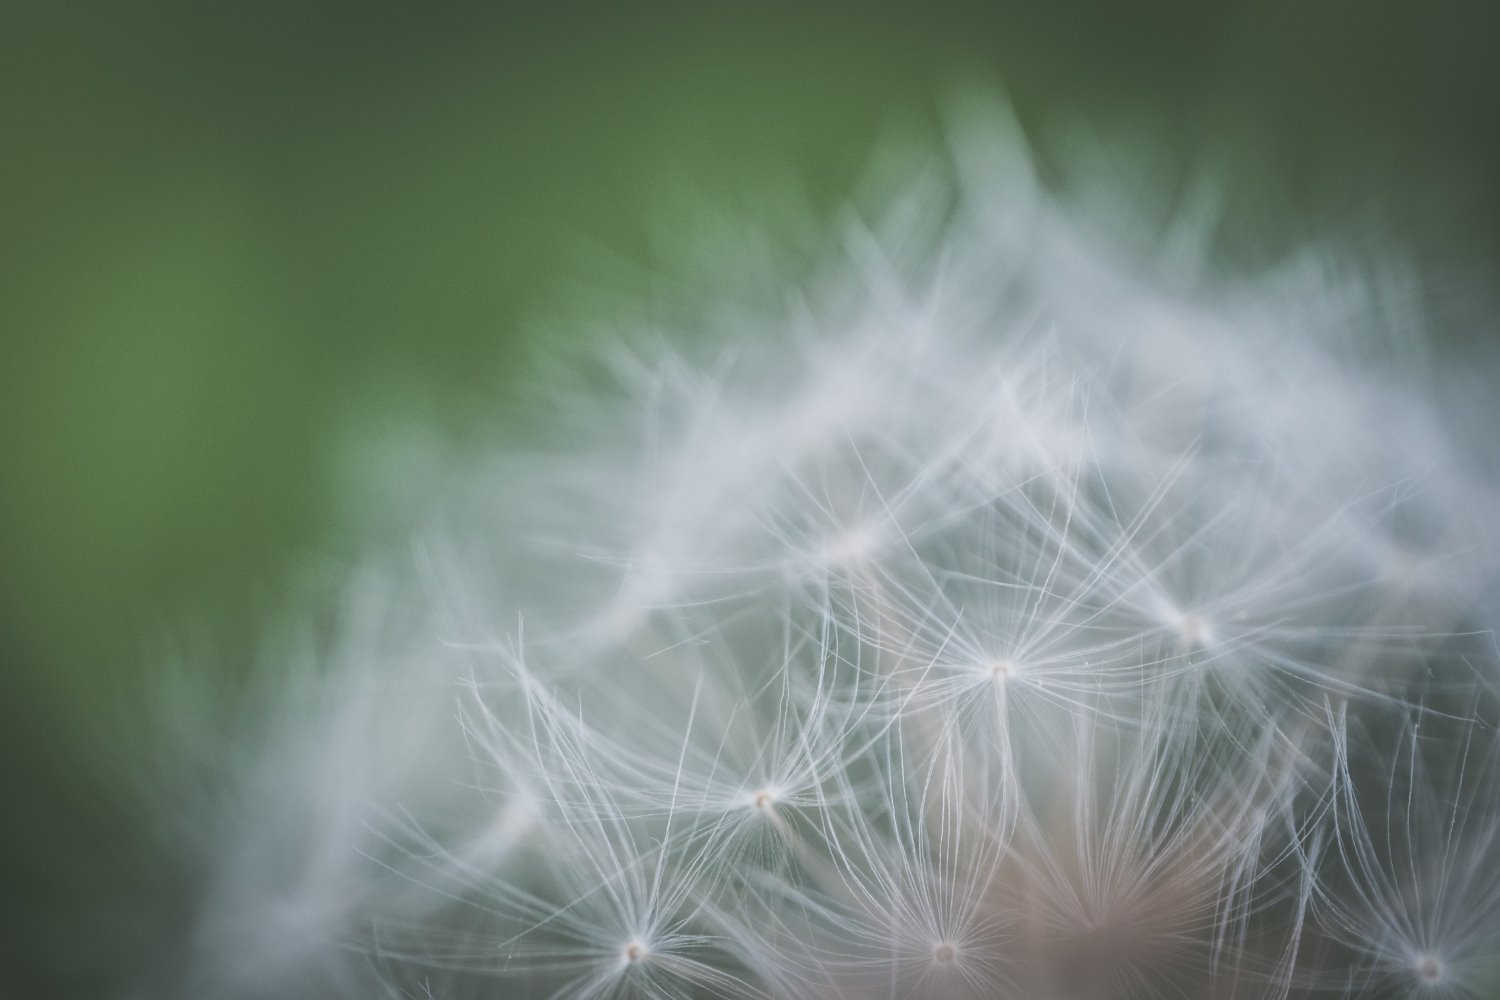 dandelion seed head with a wide aperture